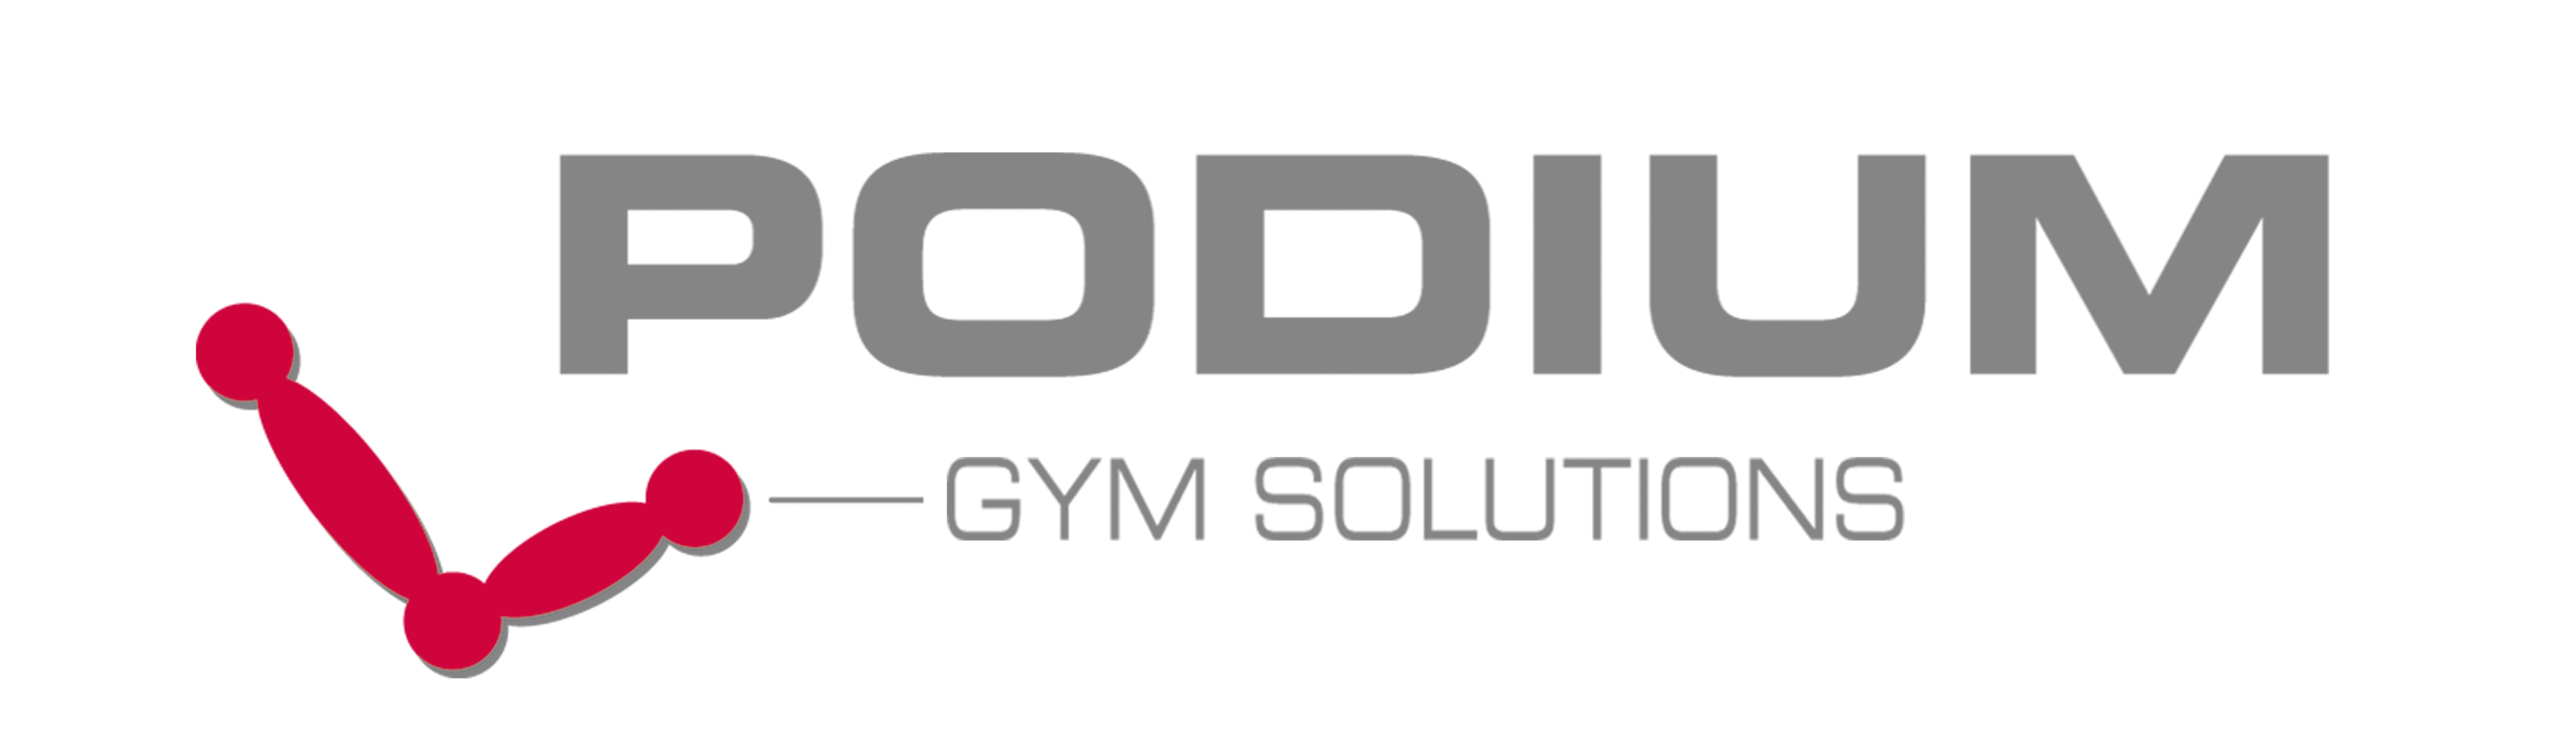 Podium Gym Solutions